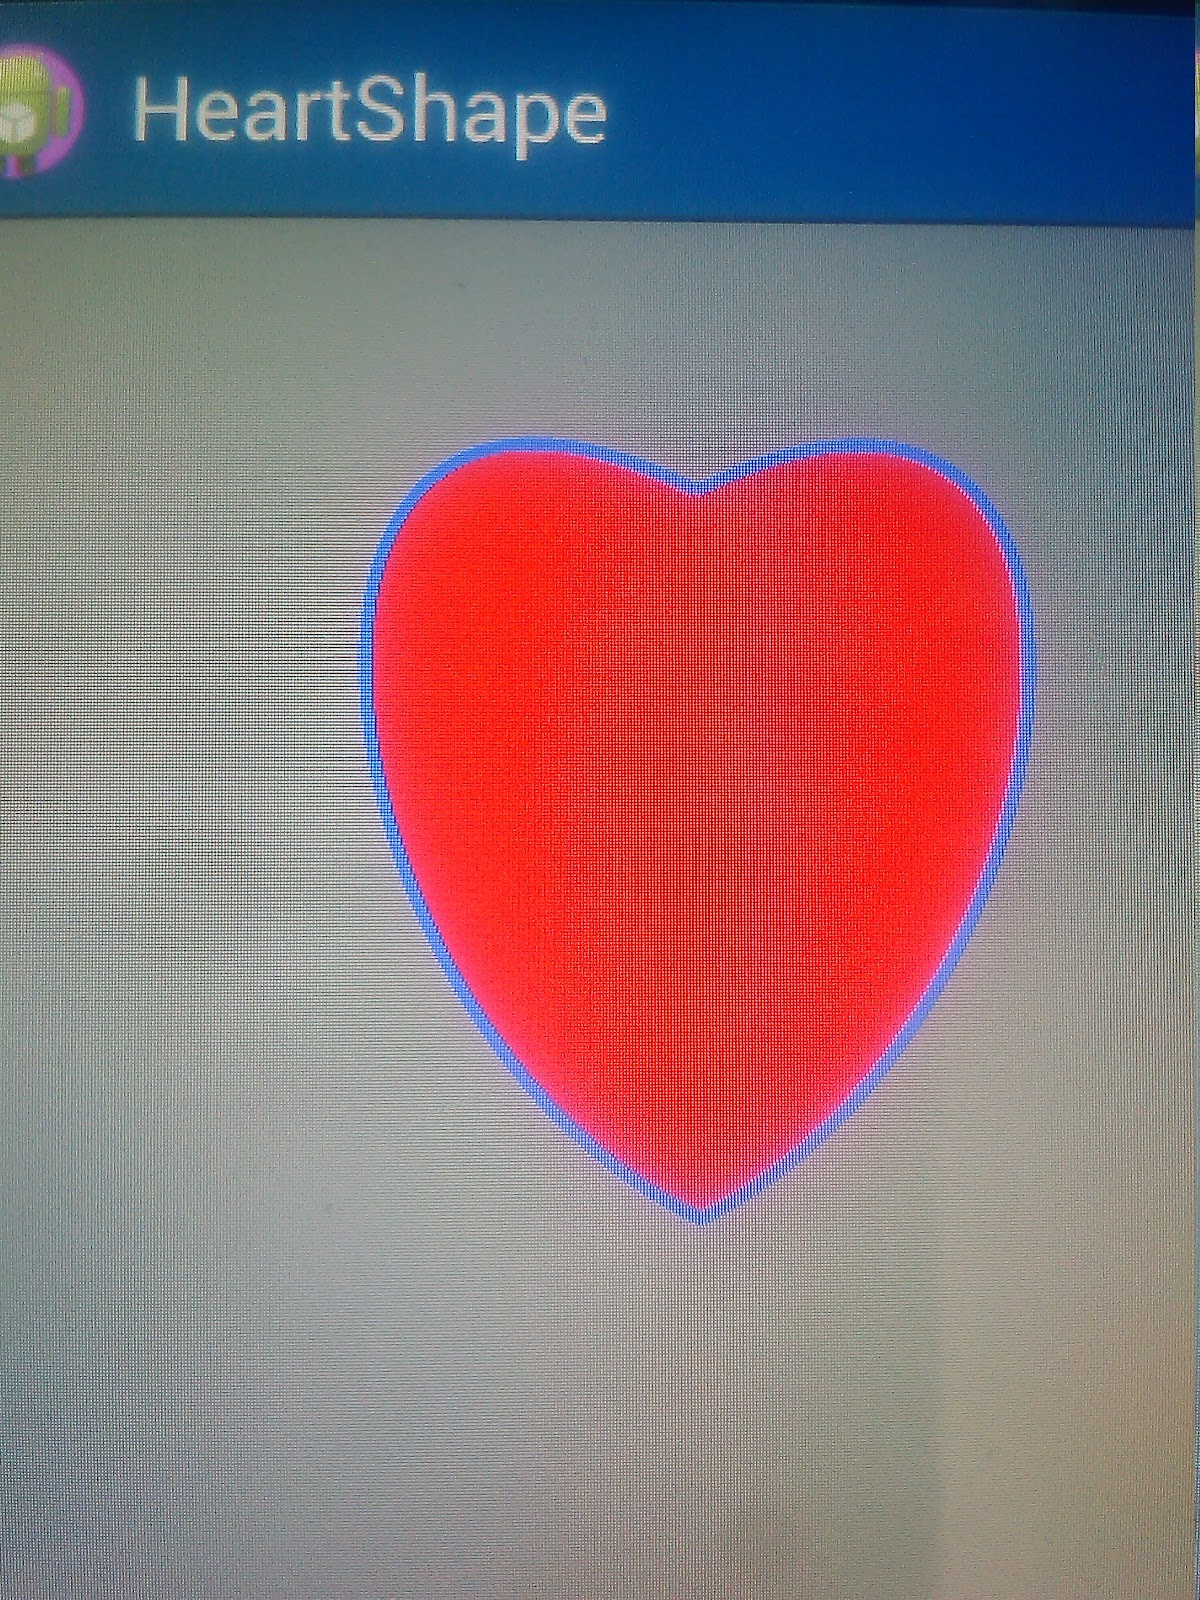 Android Concepts: Make a Heart Shape Custom View in Android